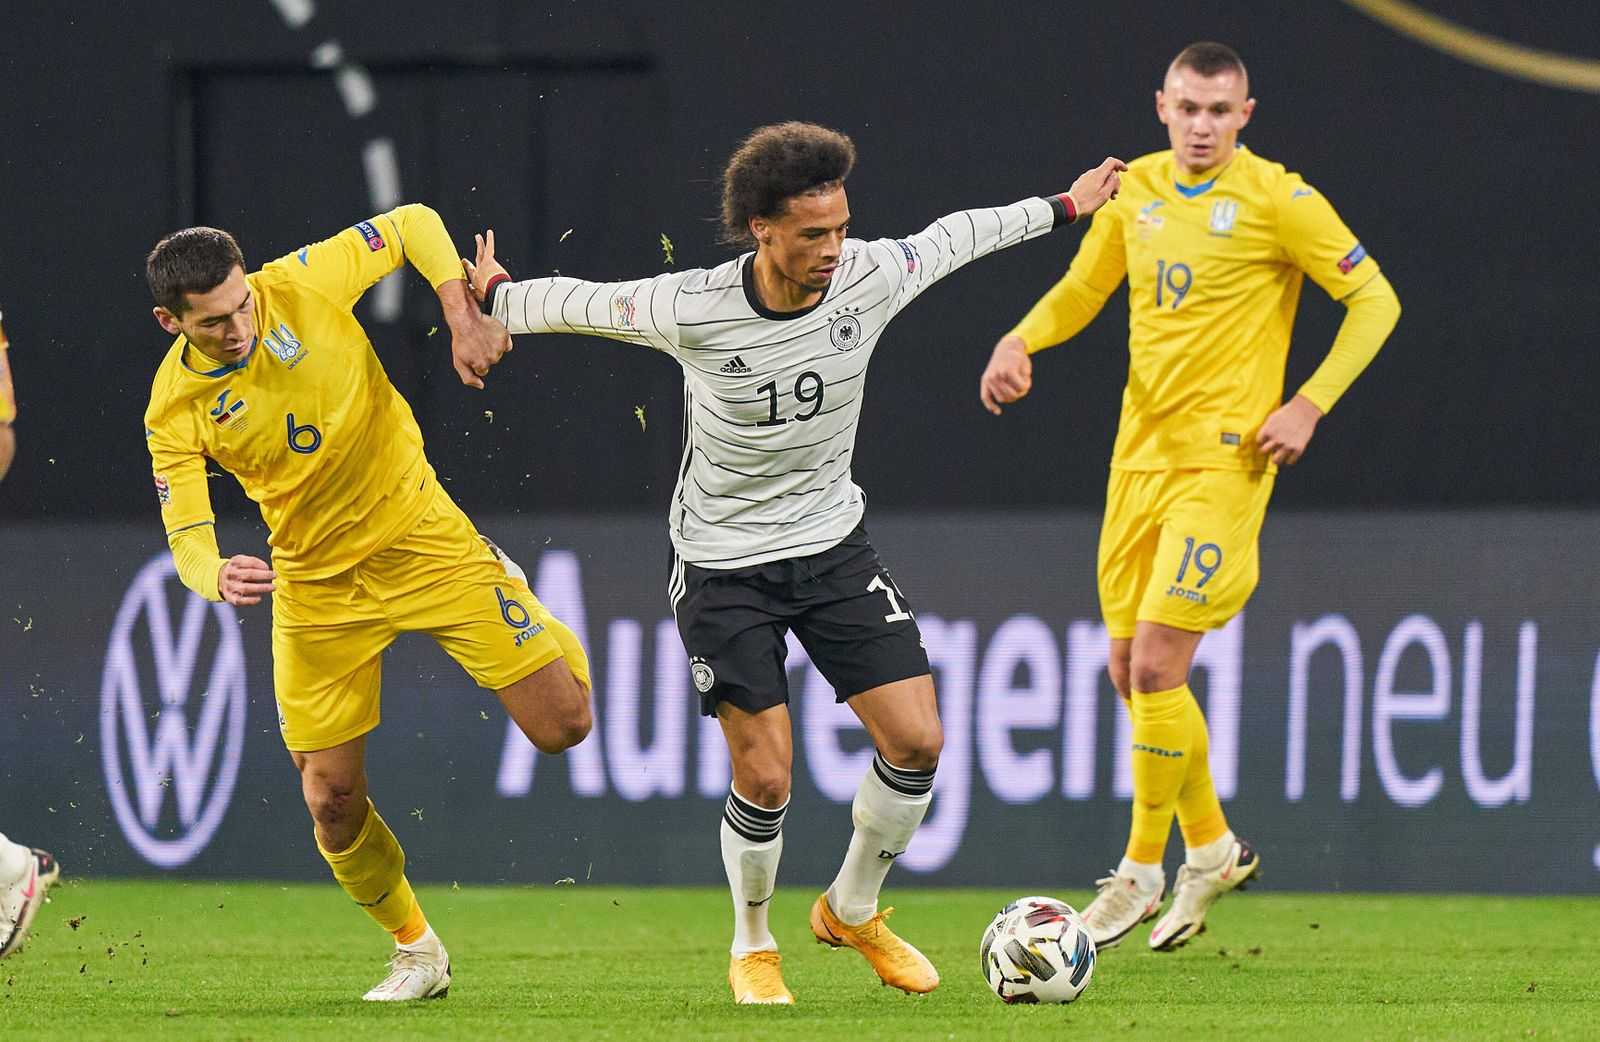 Leroy SANE, DFB 19 compete for the ball, tackling, duel, header, zweikampf, action, fight against Taras STEPANENKO, UKR